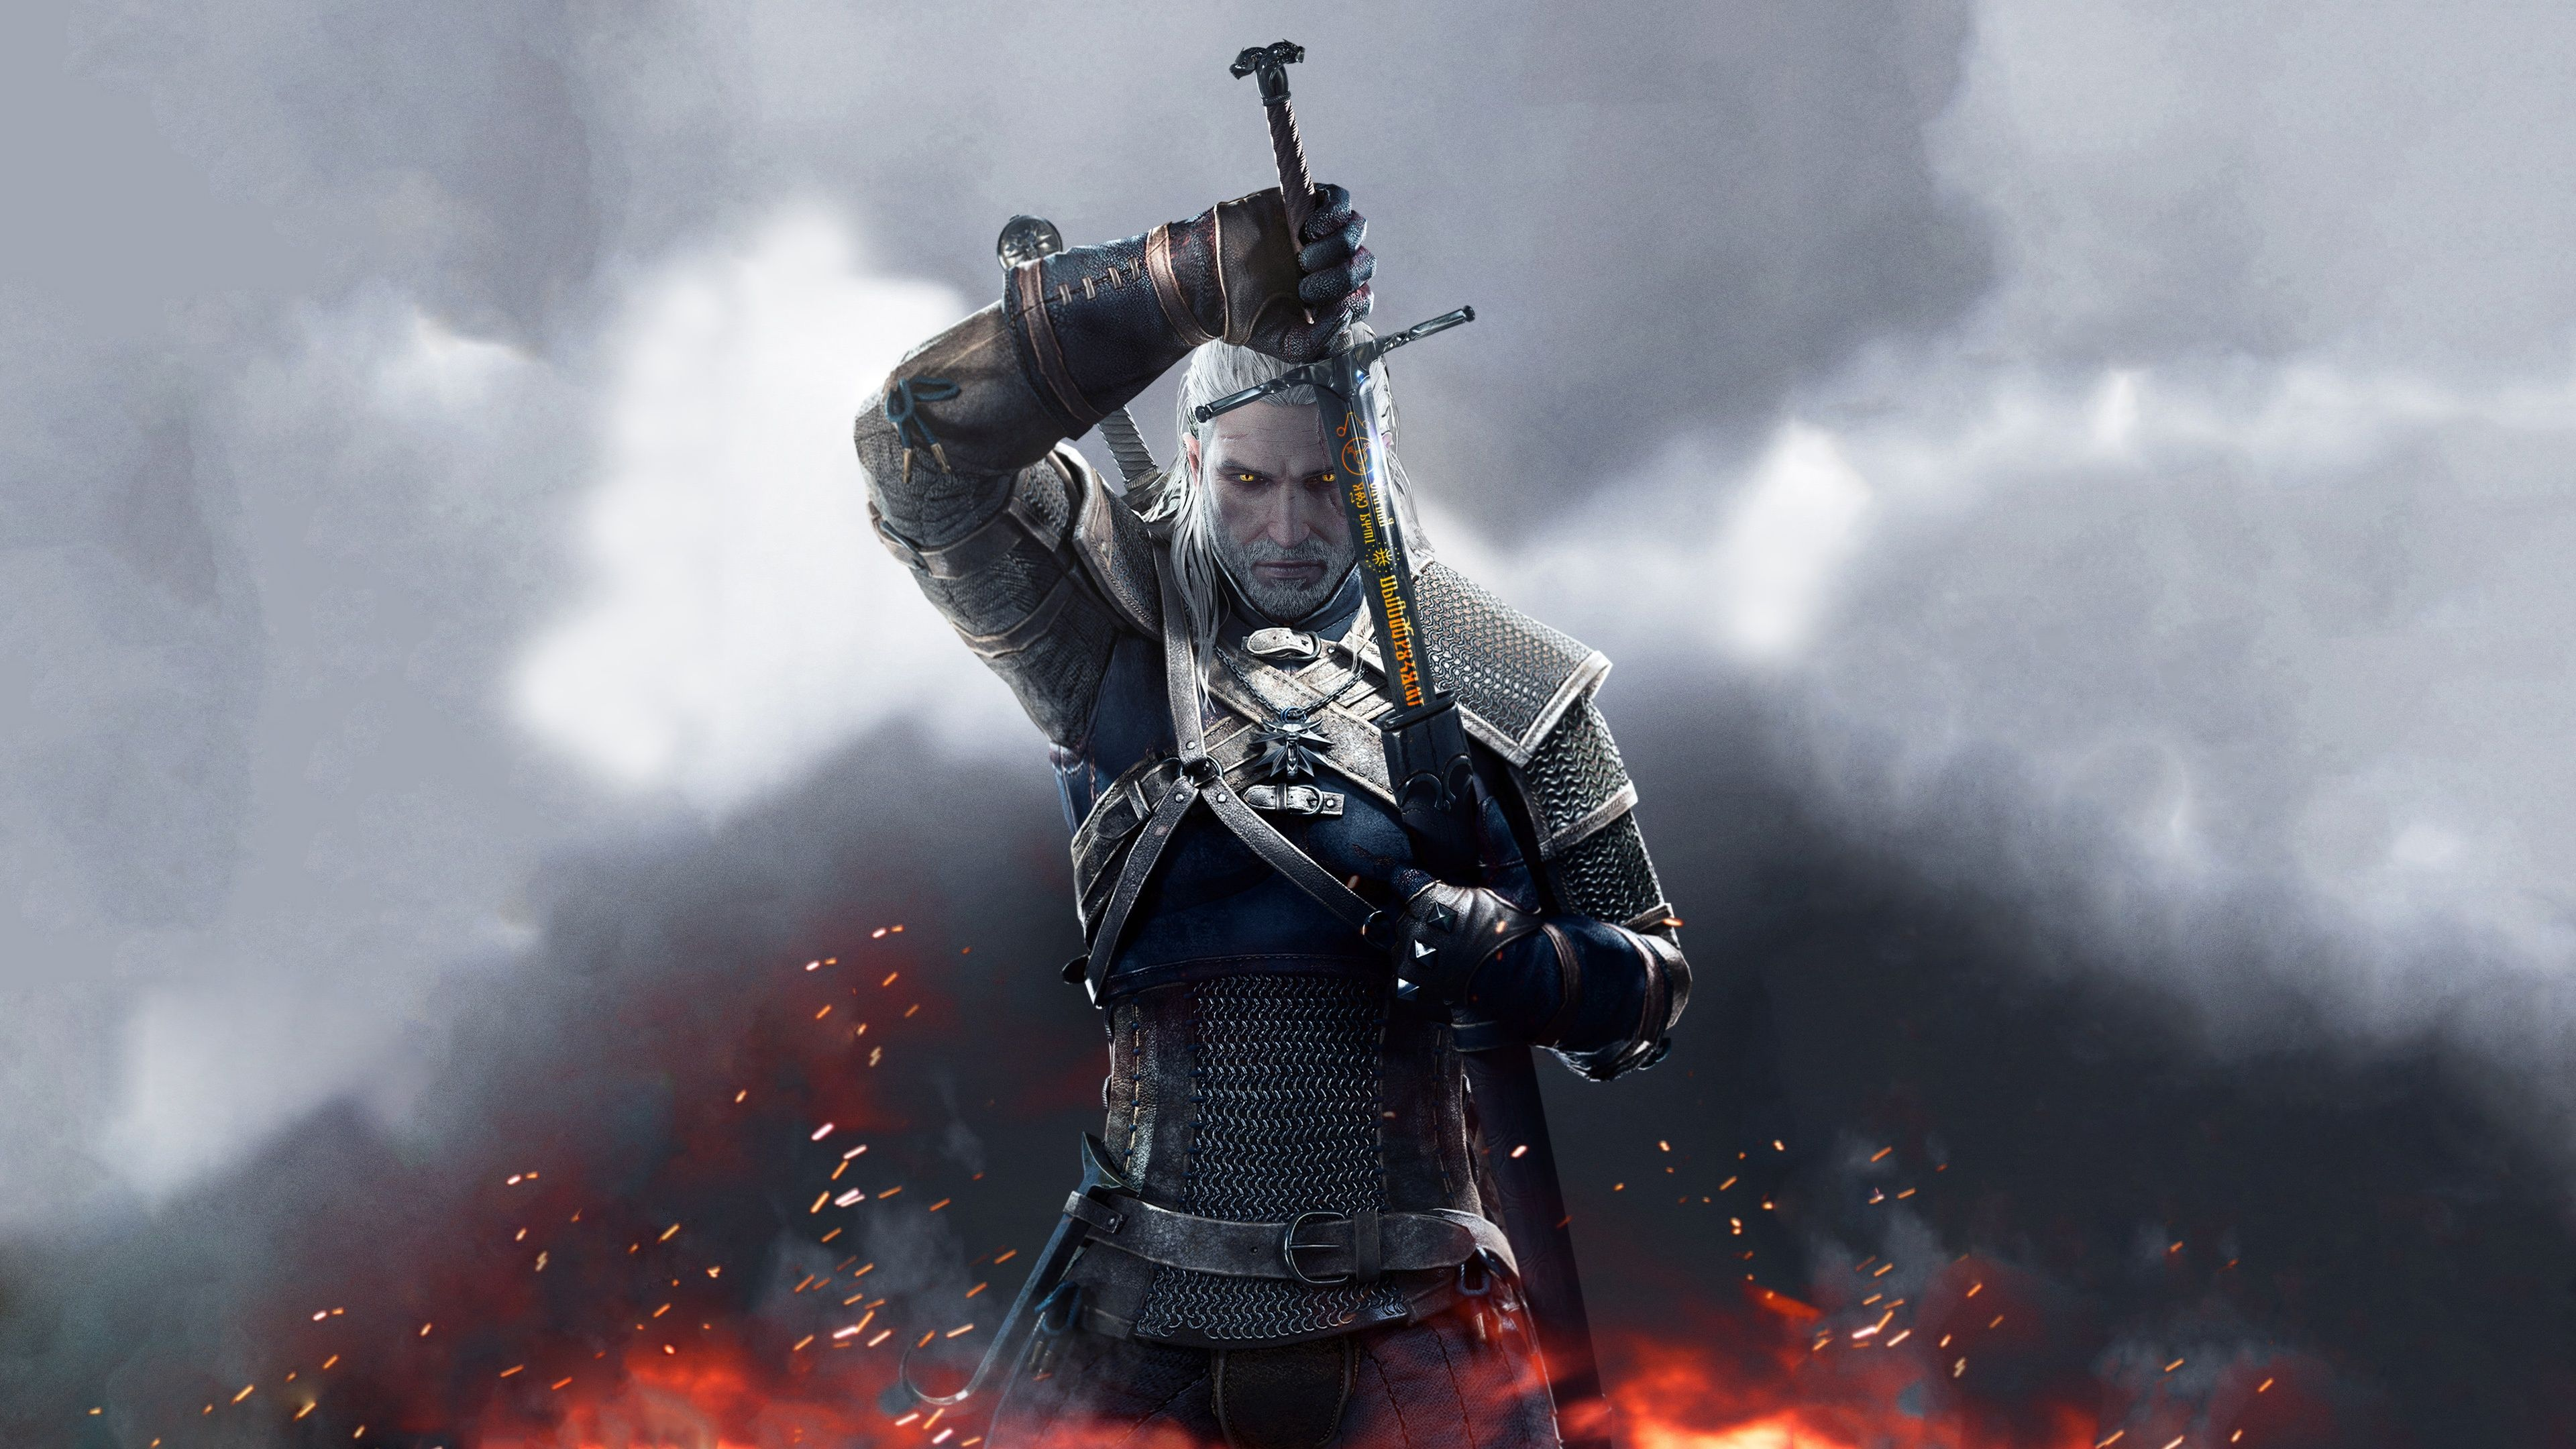 Witcher 4k Wallpapers Top Free Witcher 4k Backgrounds Wallpaperaccess